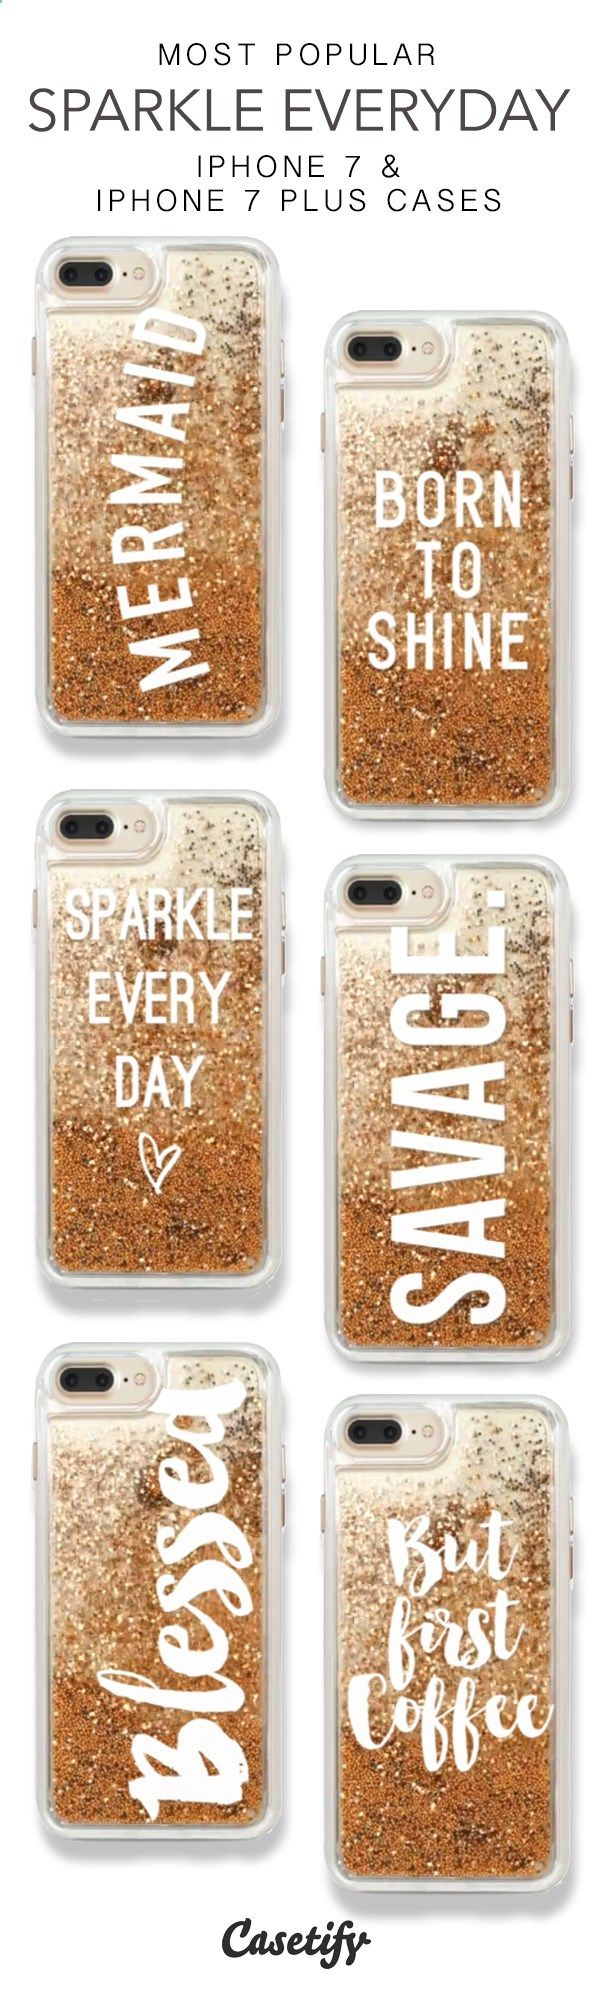 low priced 3176d 18dc2 Phone Cases - Most Popular Sparkle Everyday iPhone 7 Cases & iPhone ...